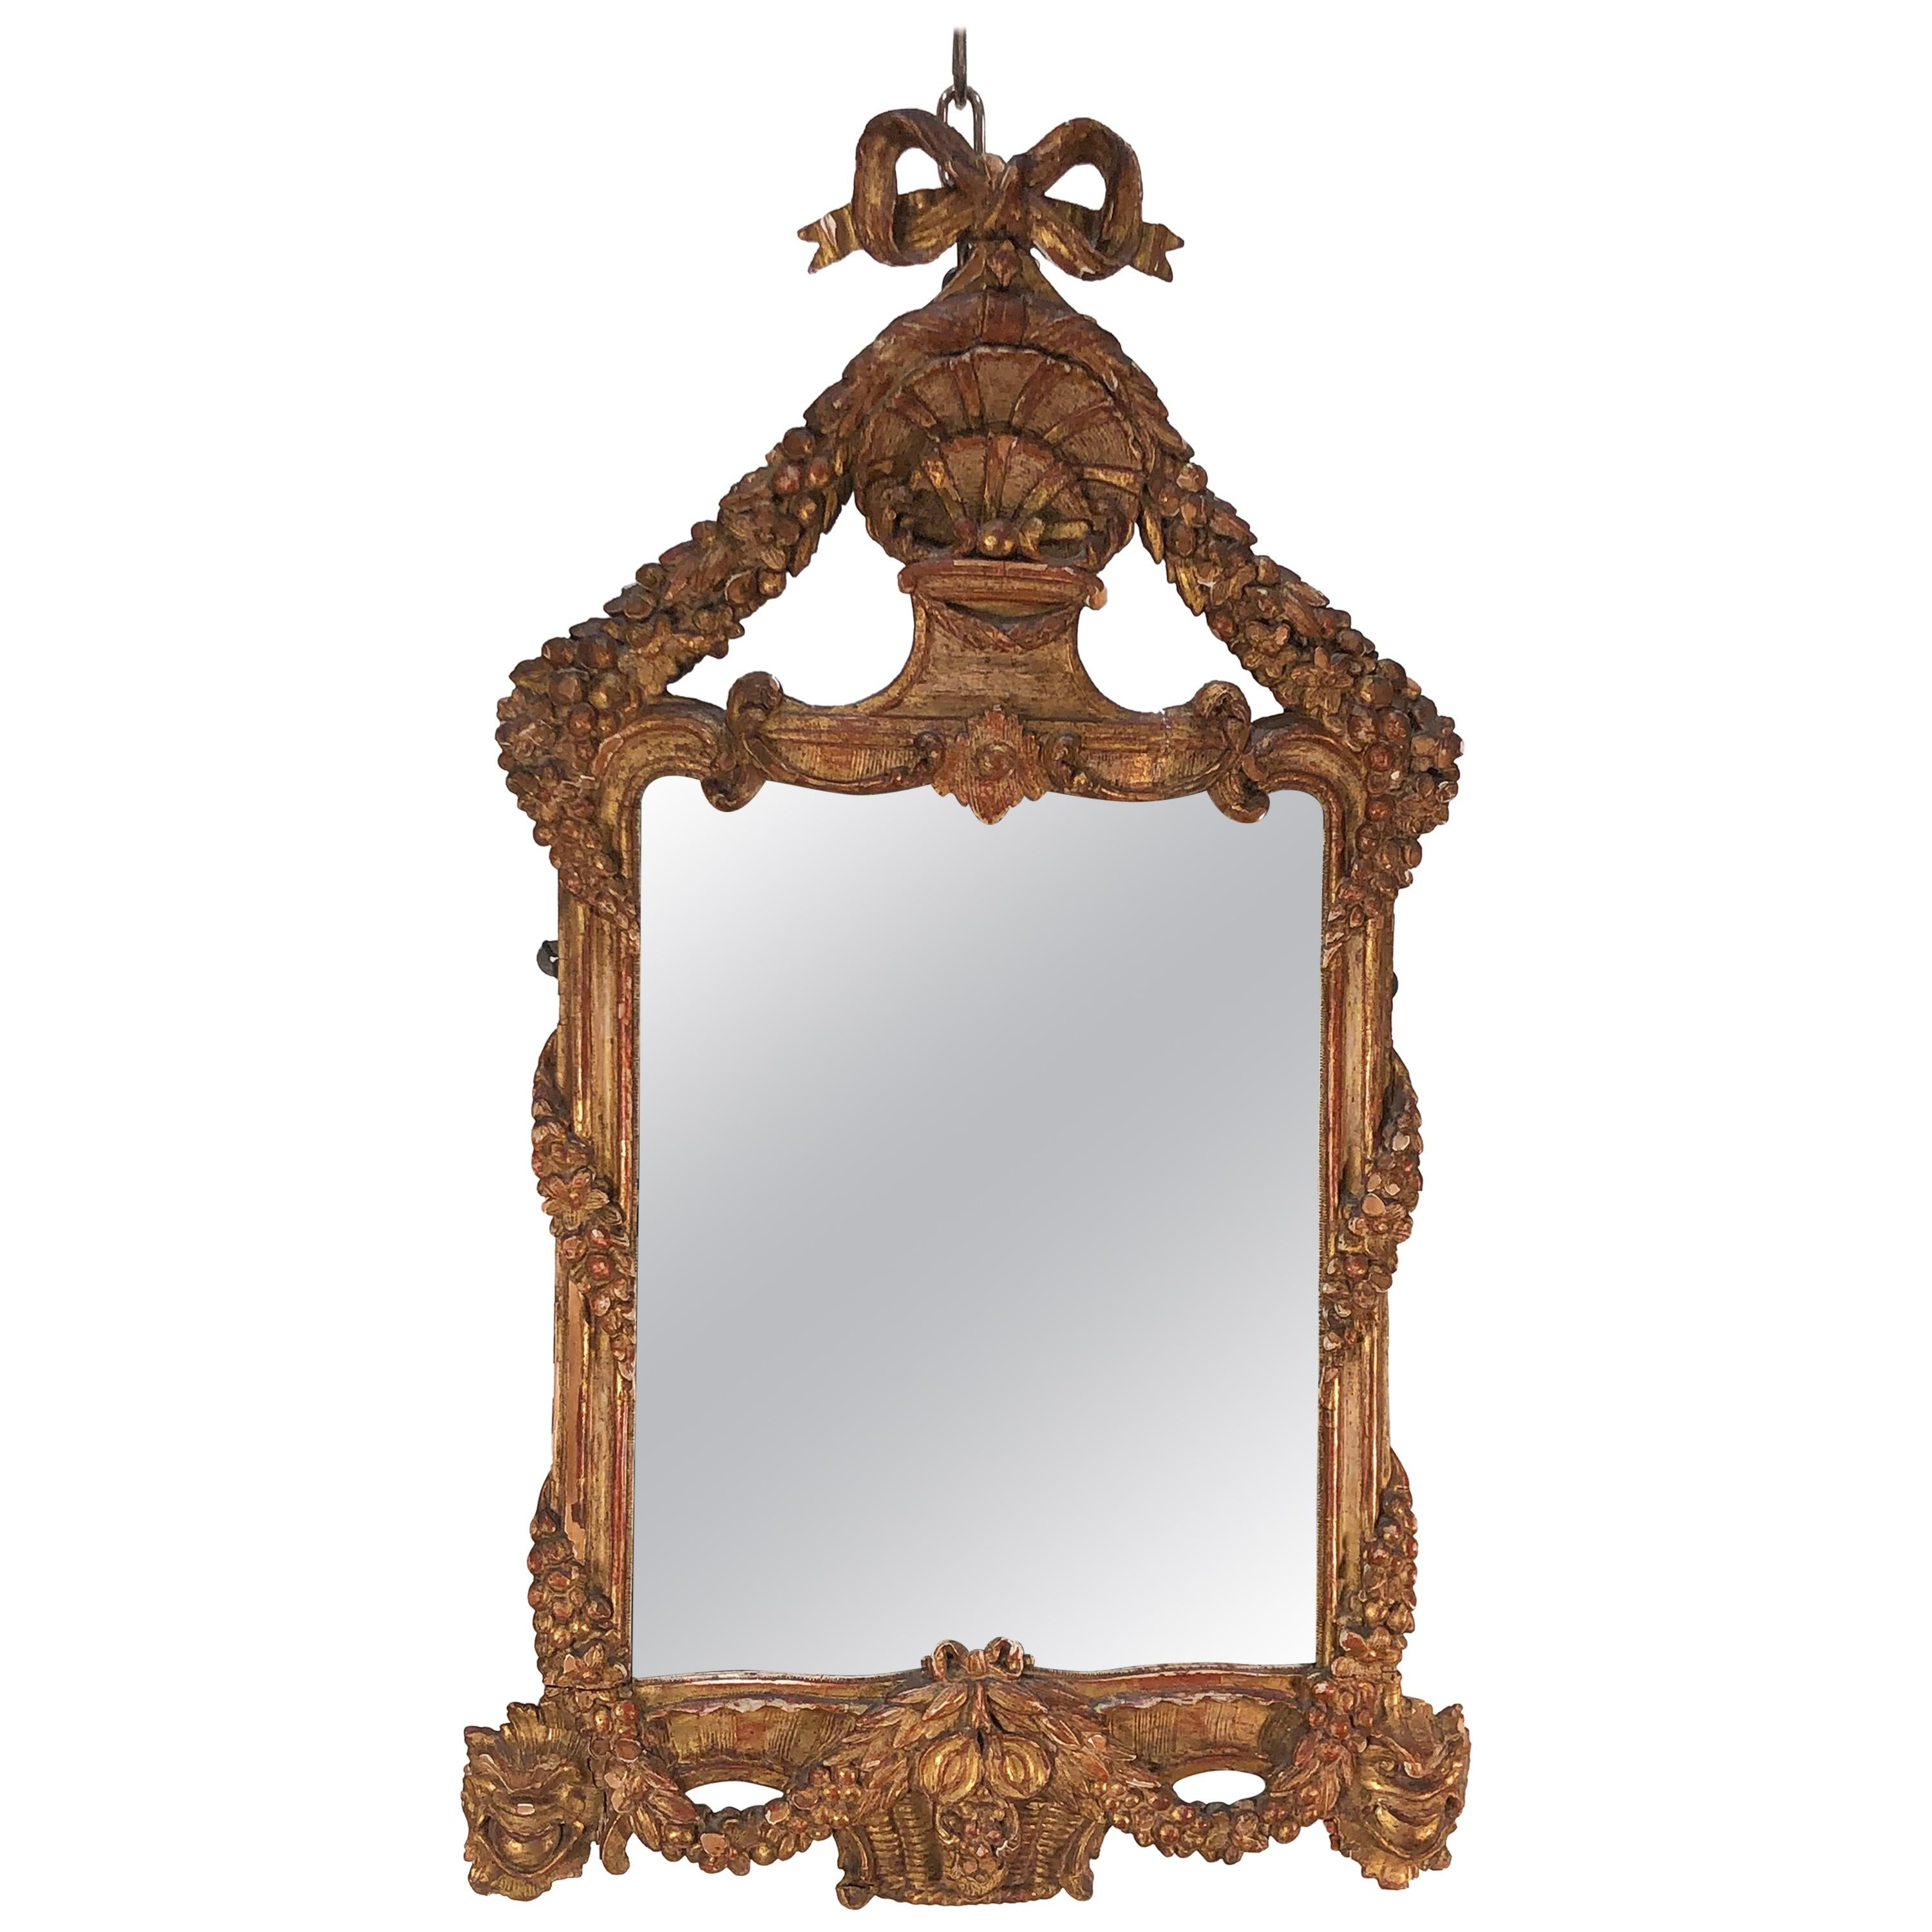 Late 18th Century Italian Neoclassical Carved Giltwood Mirror